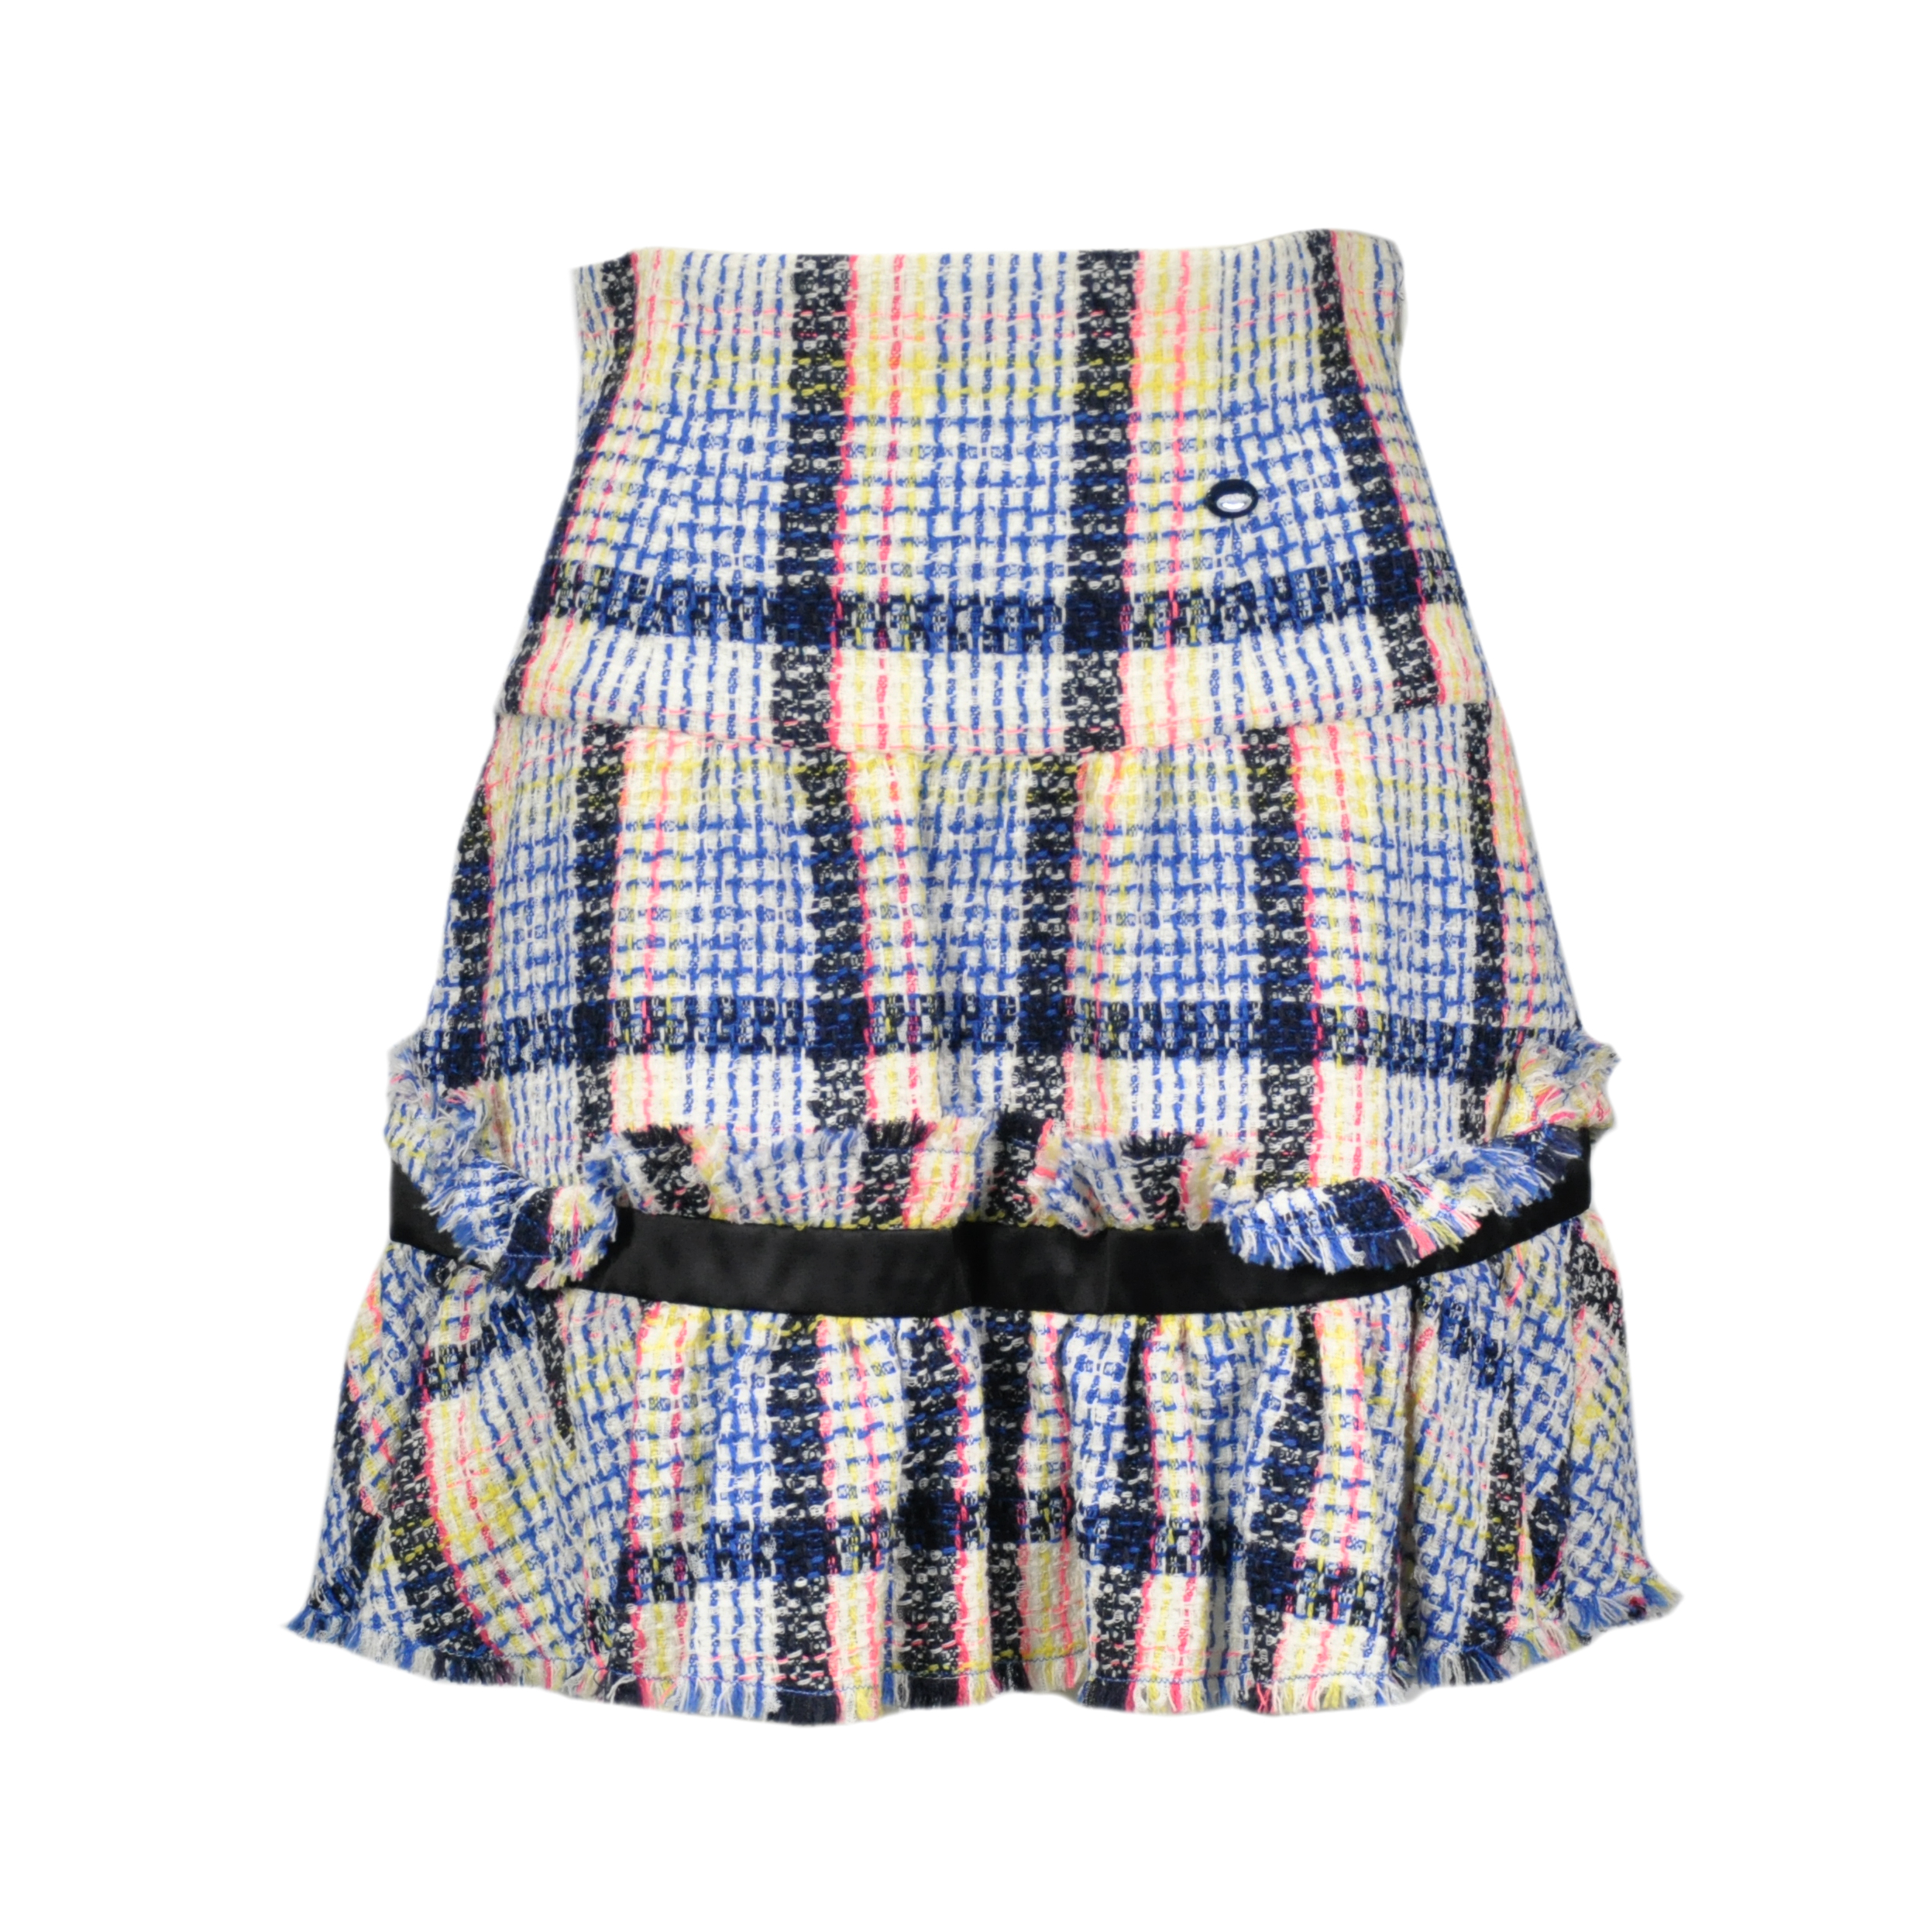 6be6fd68f7c1 Authentic Second Hand Chanel Ruffle Hem Tweed Skirt (PSS-200-00061 ...